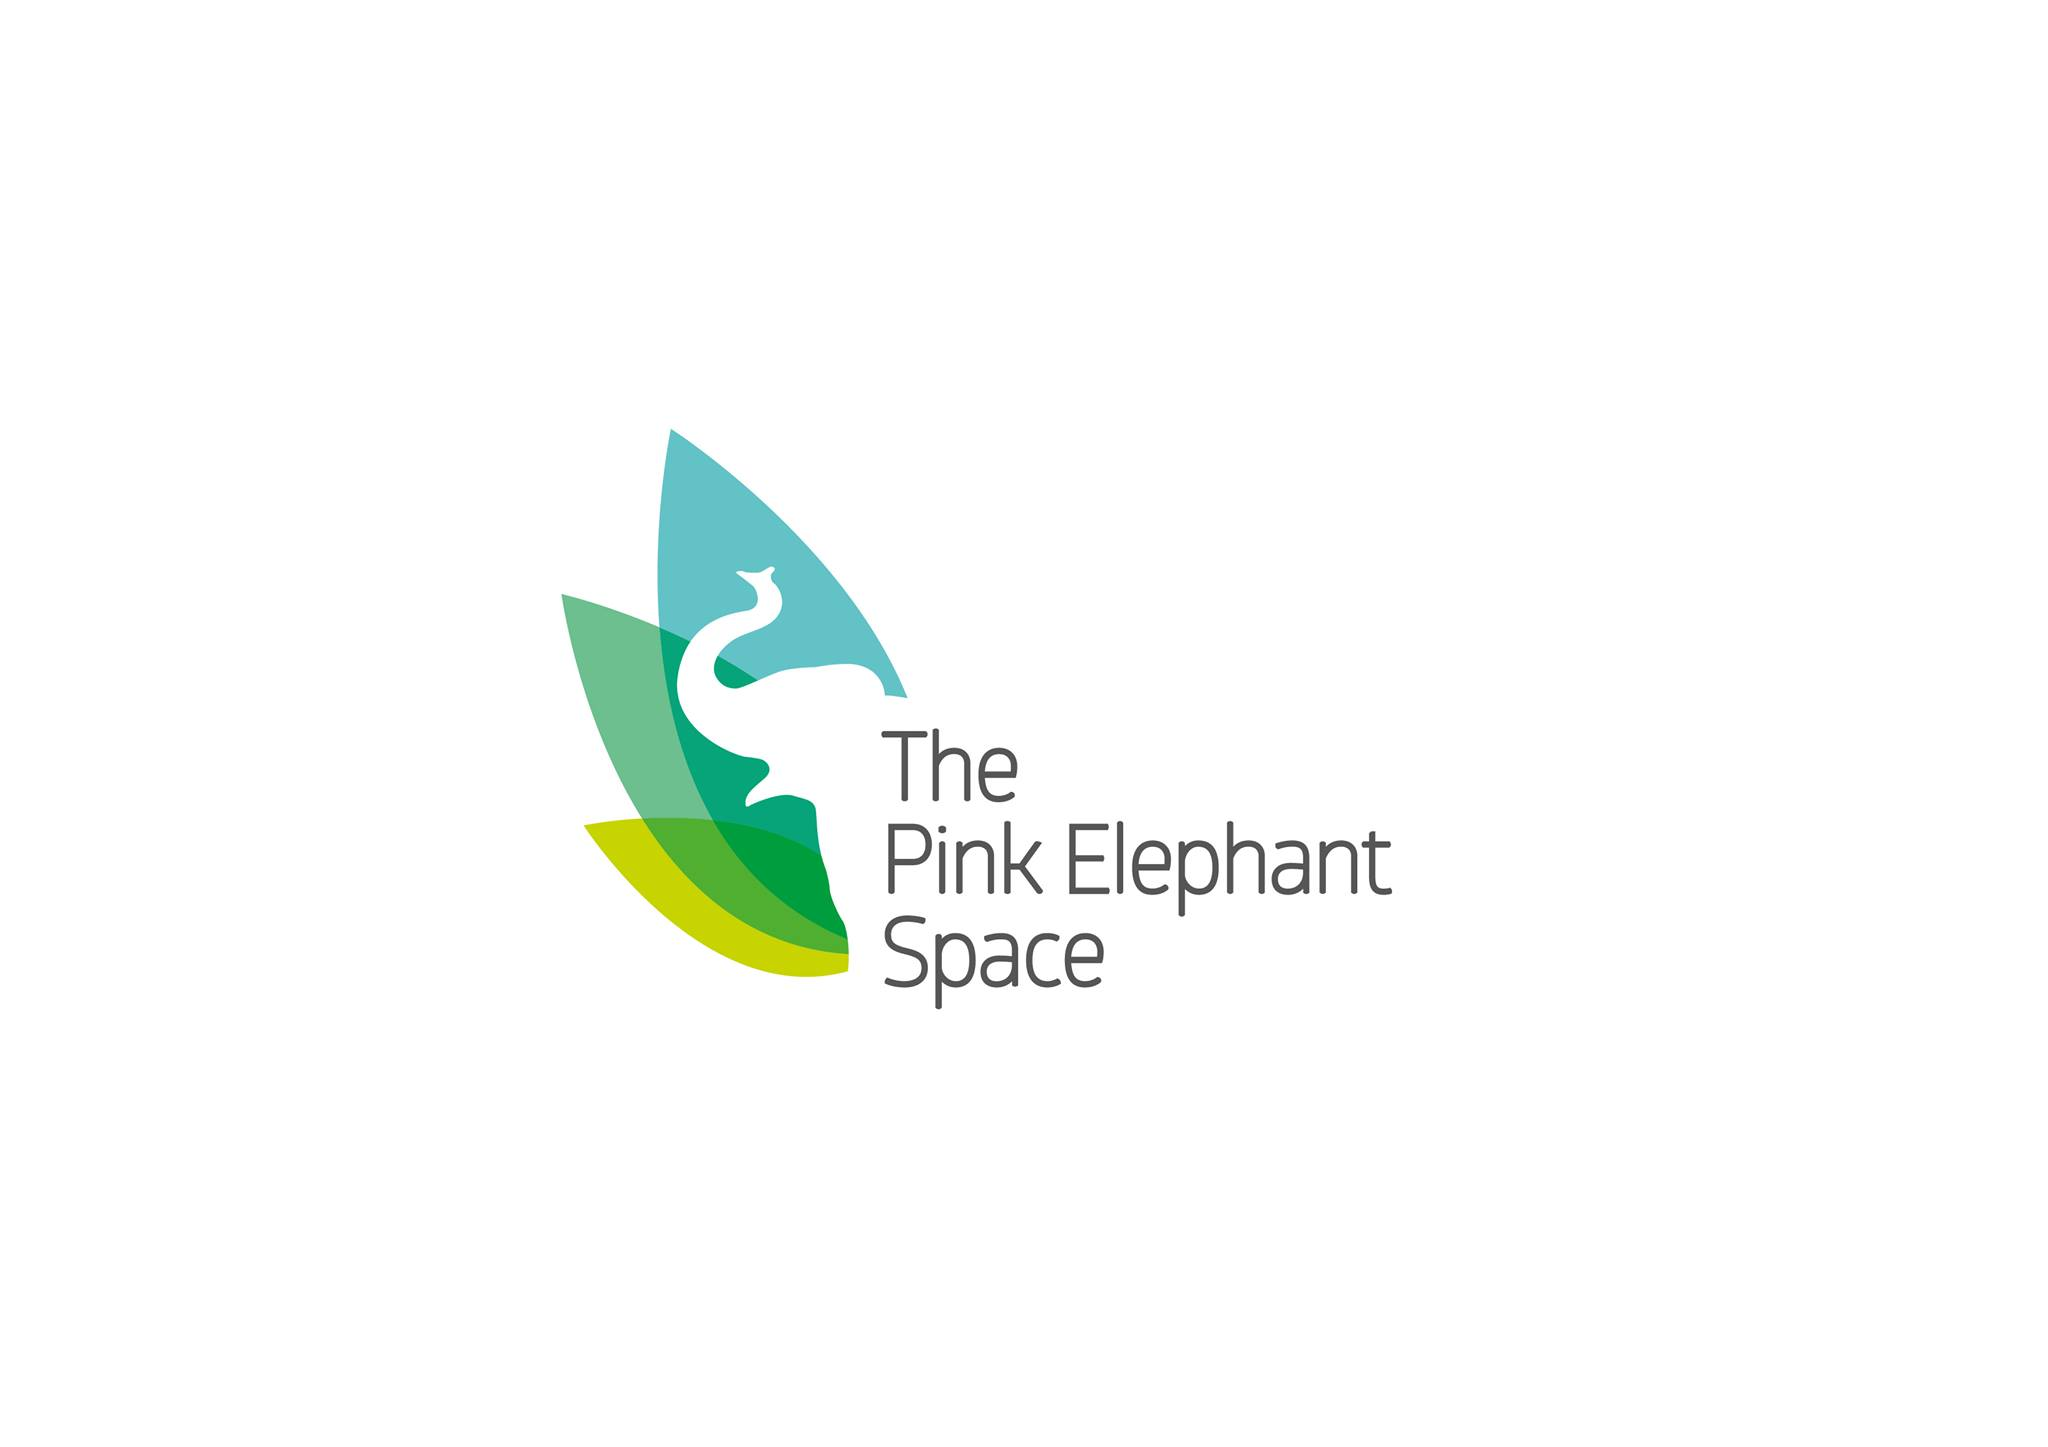 The Pink Elephant Space